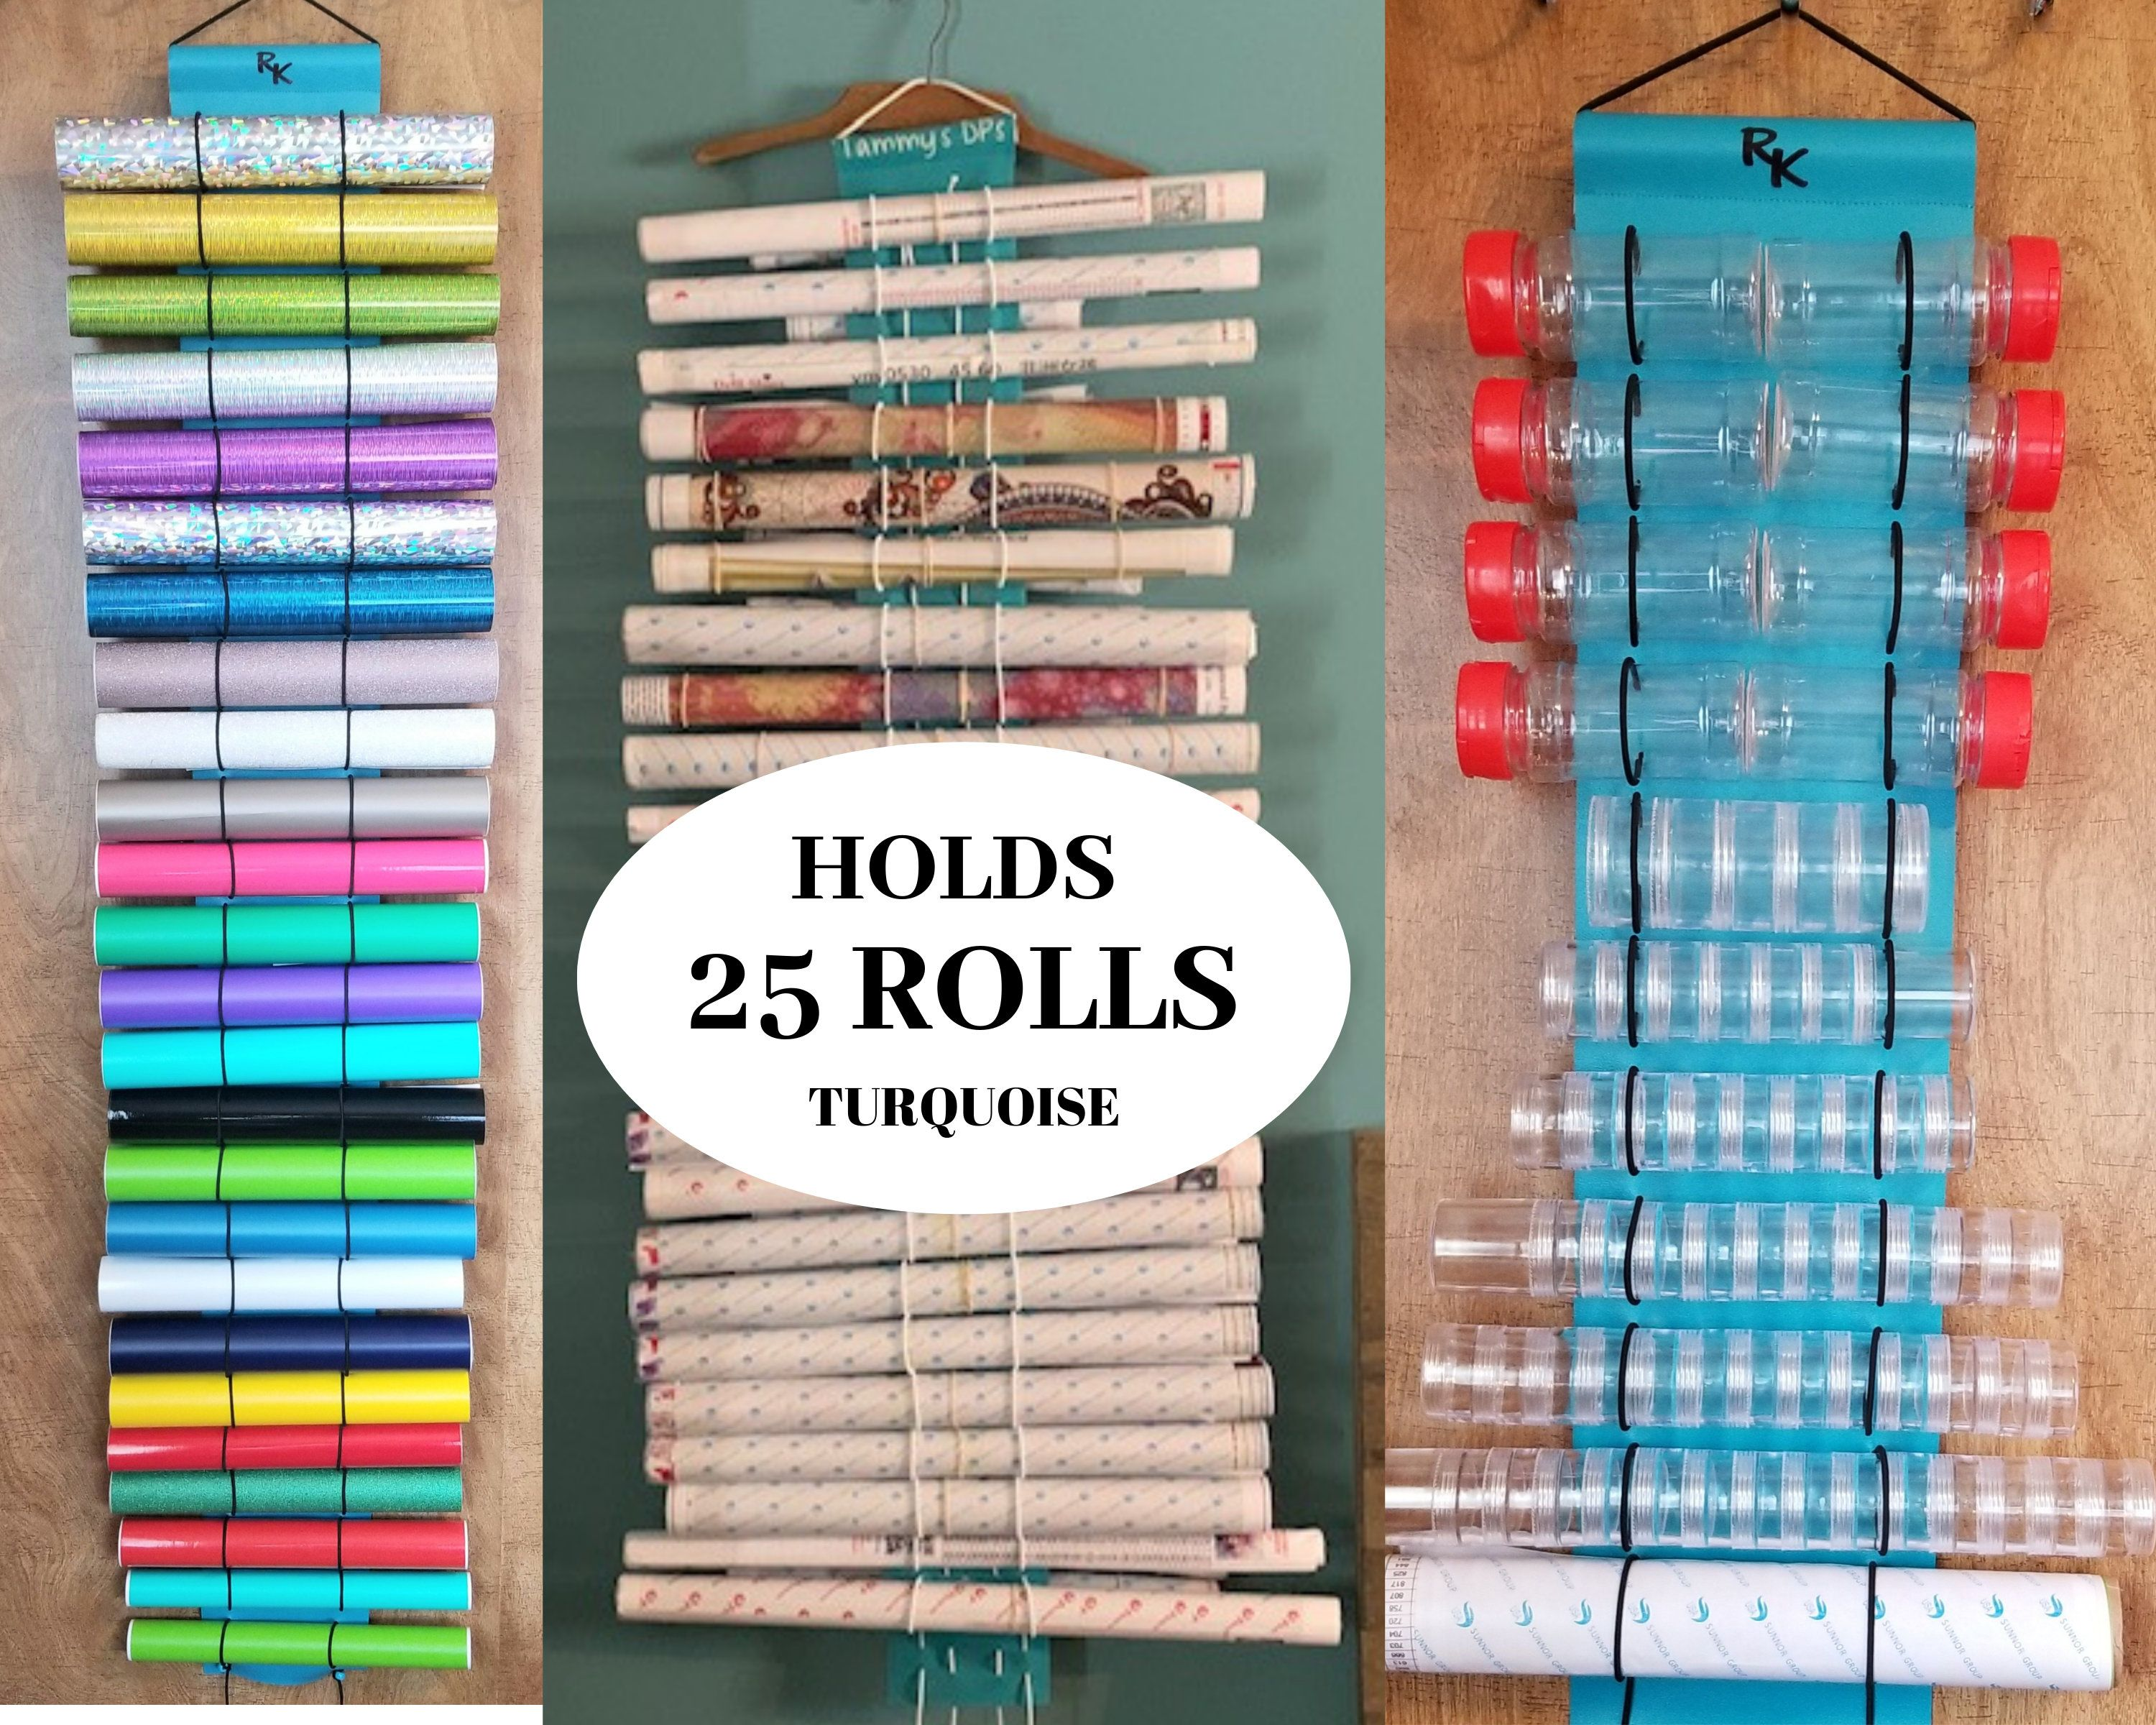 How Is This For Vinyl Organization Perfection Thanks To Holly For Sharing Cricut Craft Room Craft Room Craft Room Organization